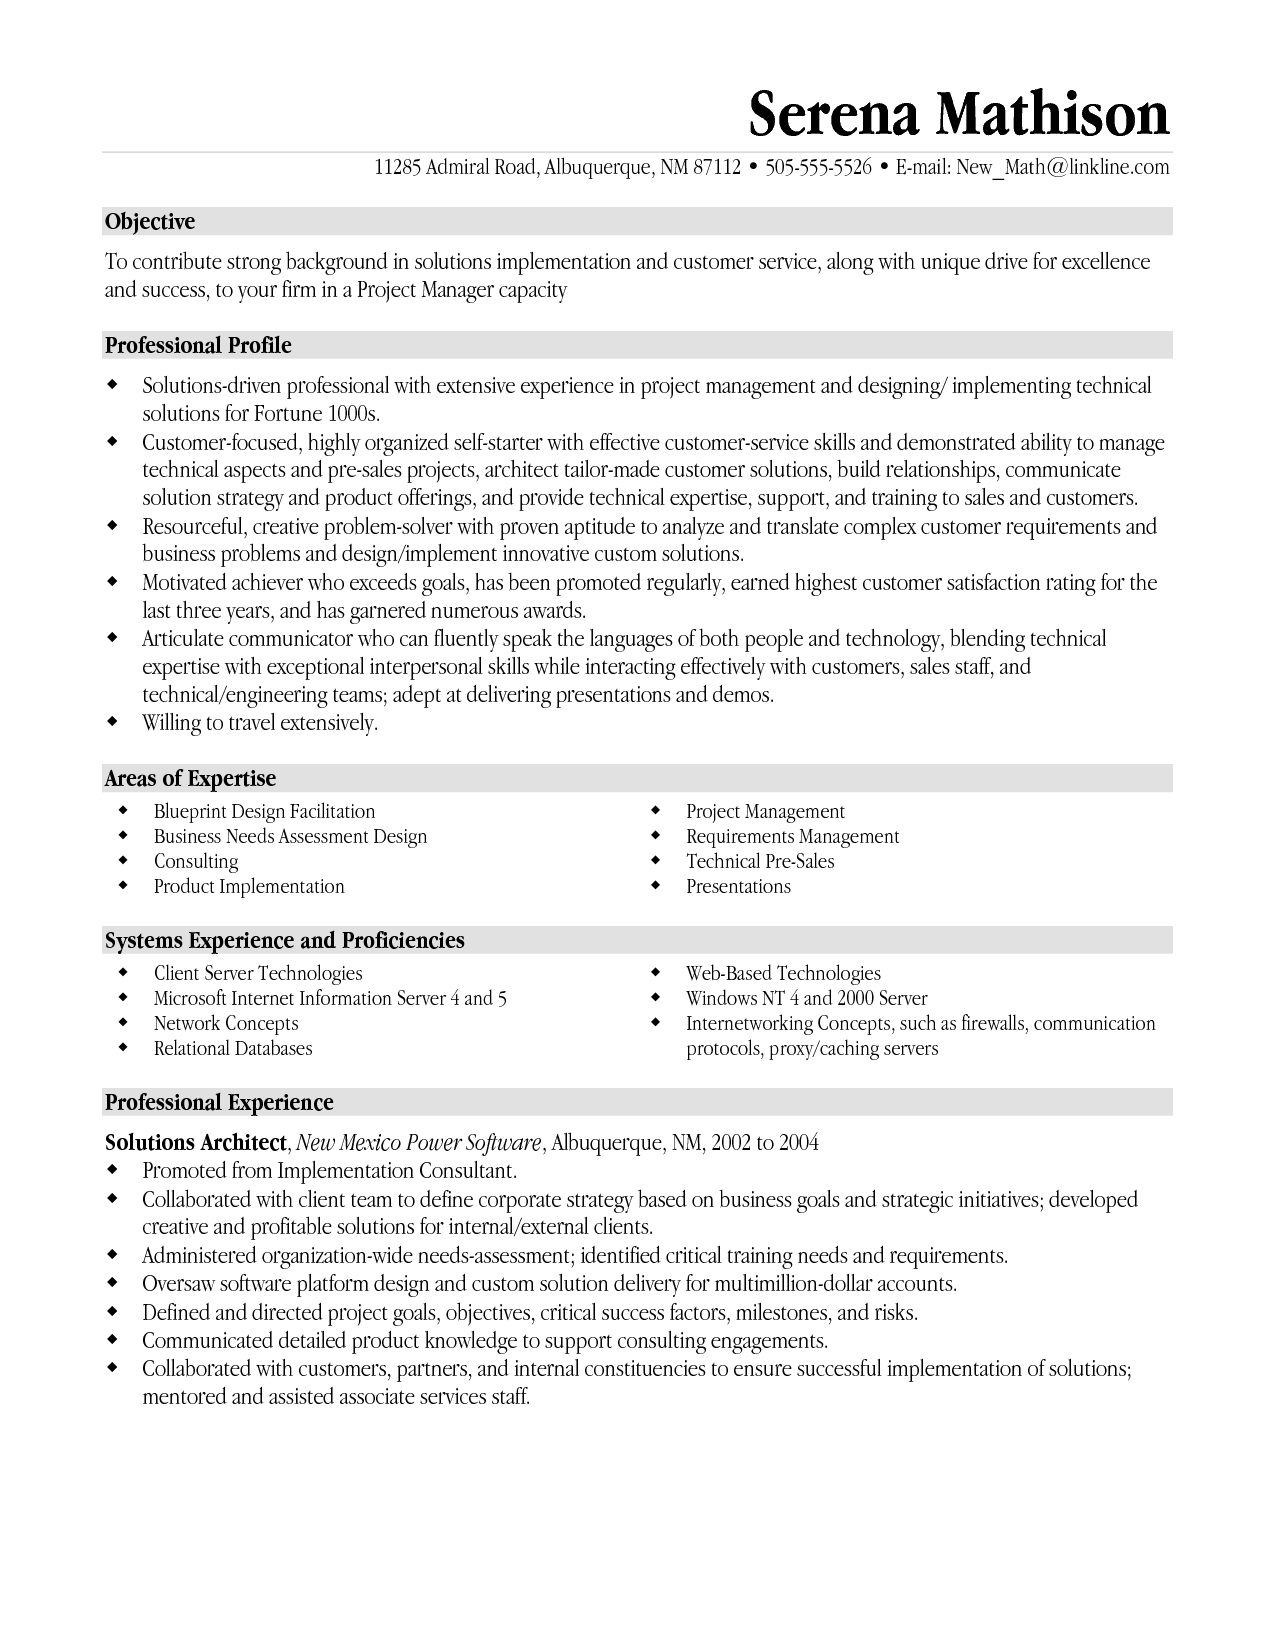 Project Management Resume Resume Templates Project Manager  Project Management Resume